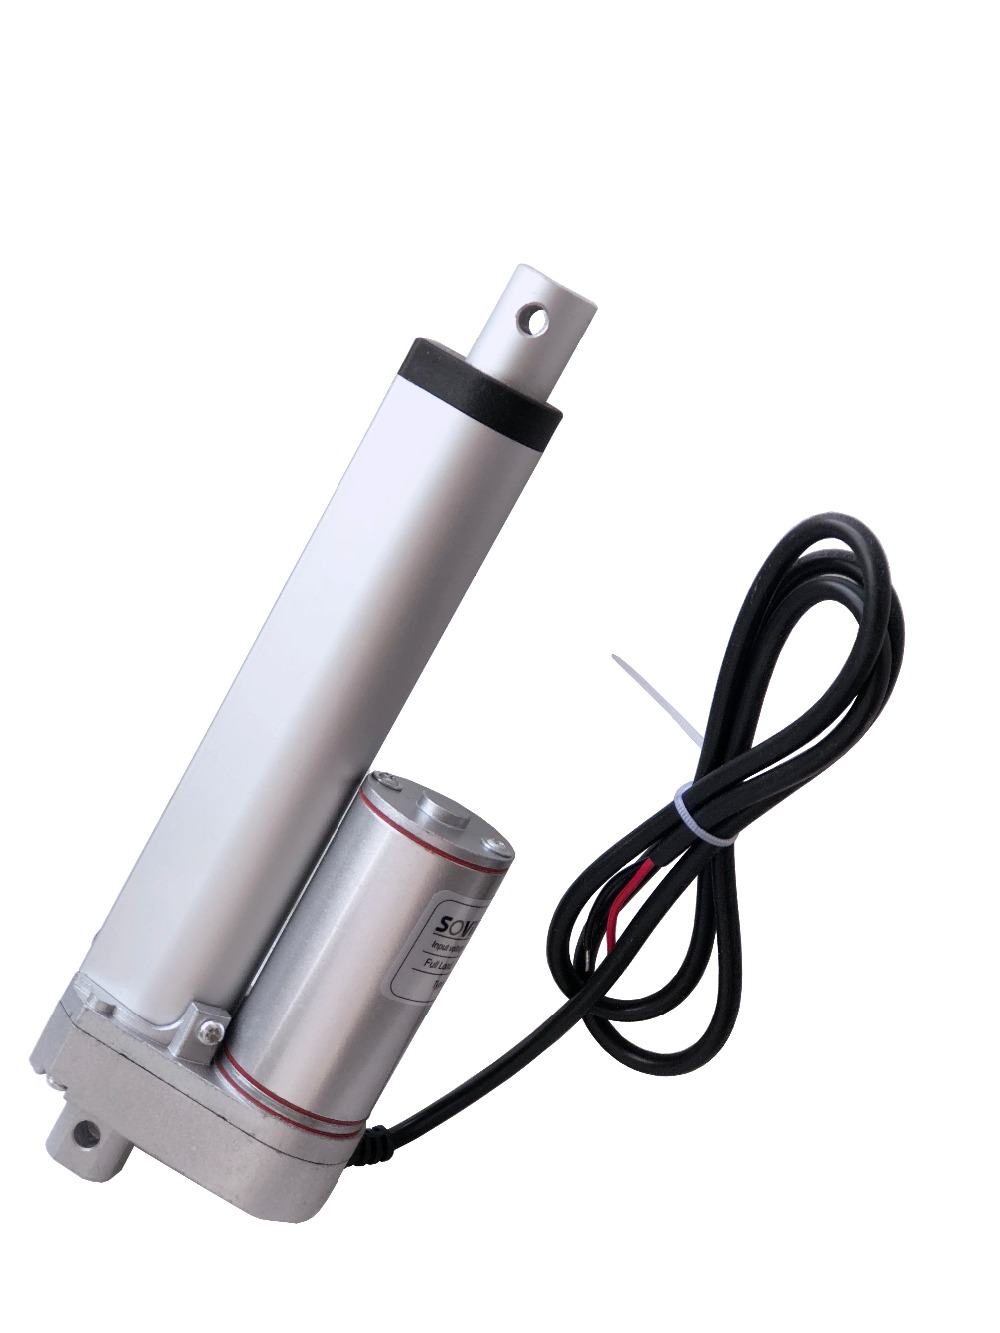 SOViK Electric Linear Actuator 100mm Stroke 12V 24V  DC Motor Heavy Duty 750N Load Include Mounting Brackets